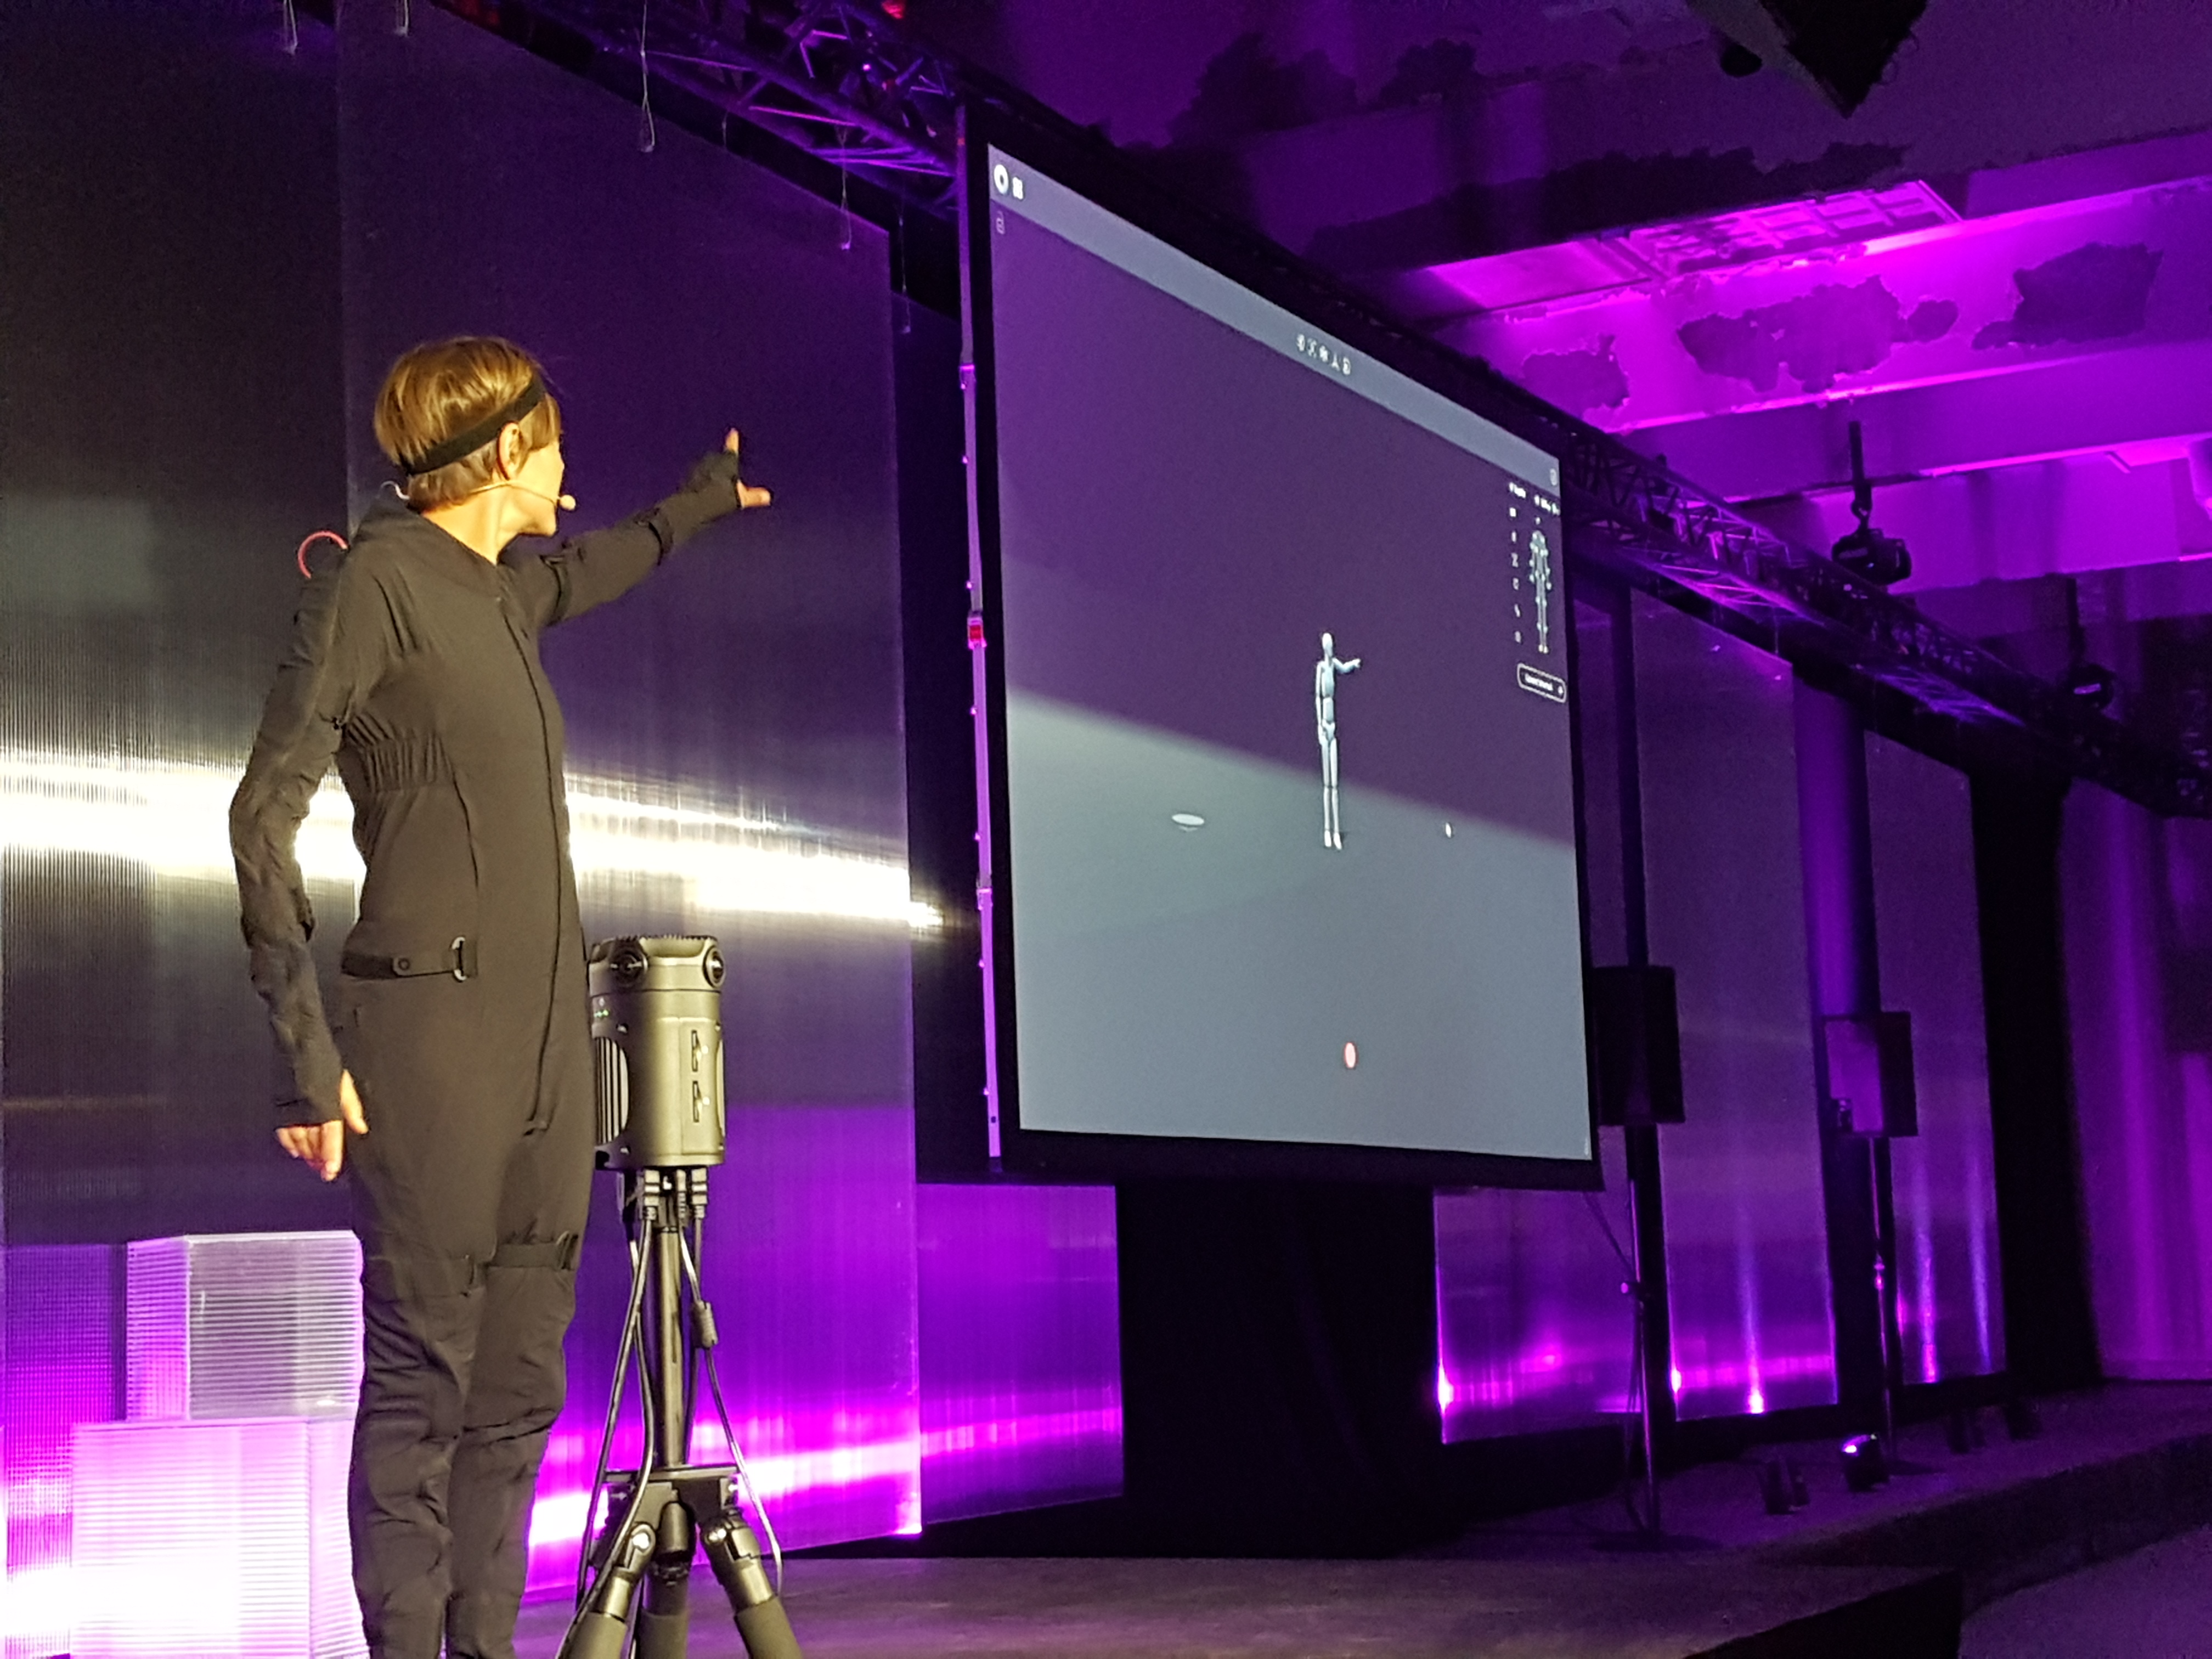 rokoko, motion capture, vr, copenx, sophie bech